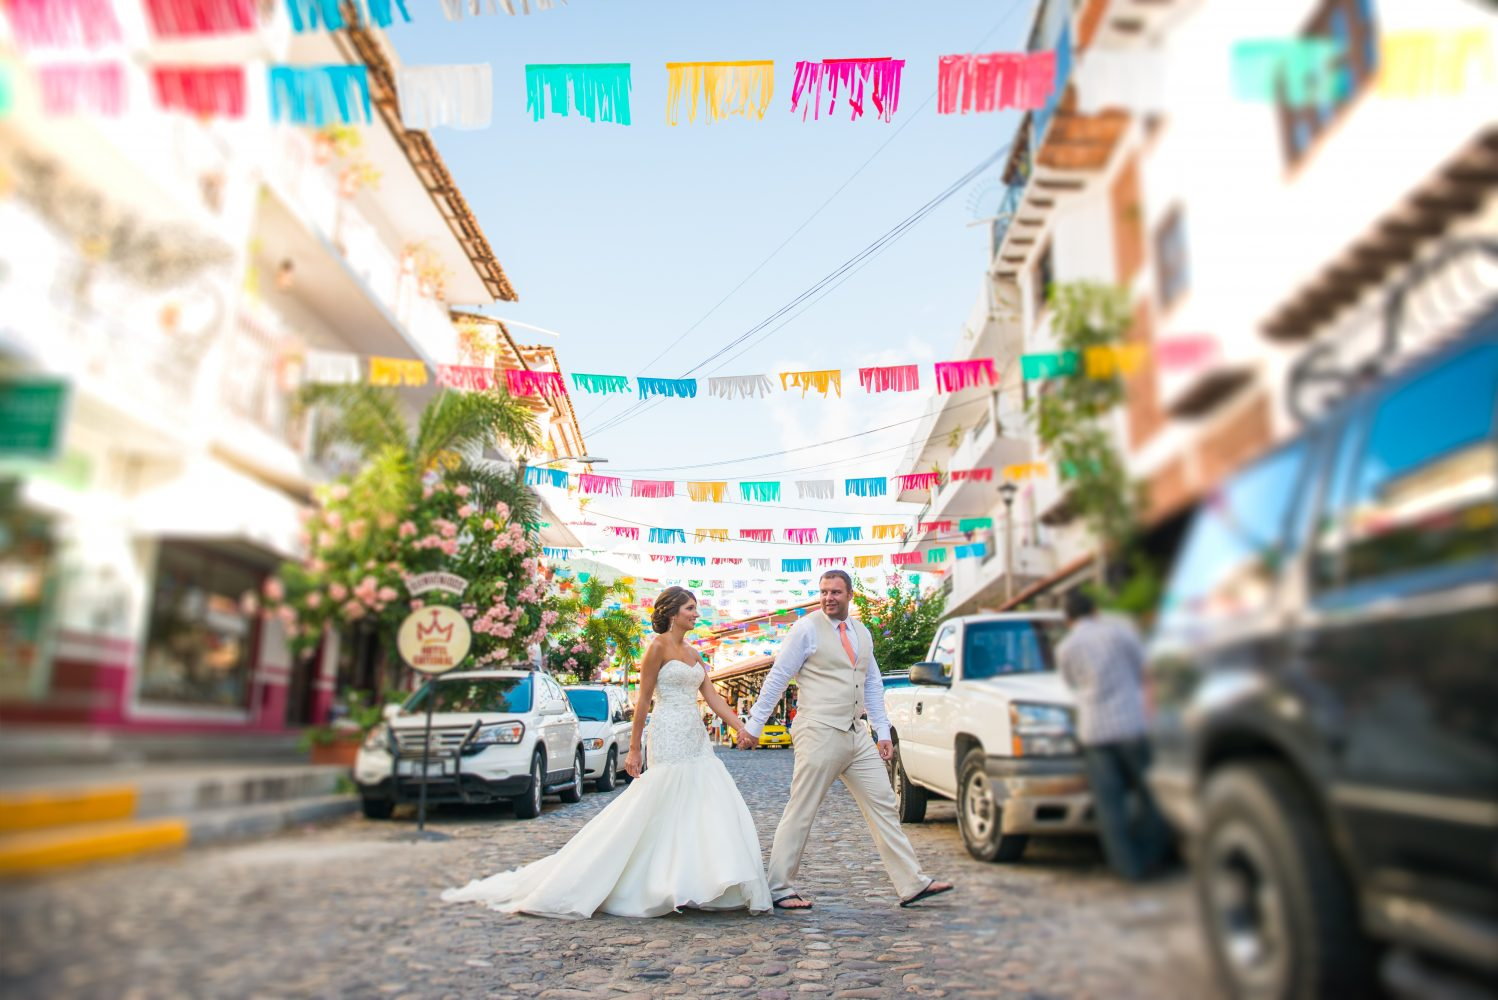 Mexico wedding in Puerto Vallarta, vibrant colors and a beautiful capture of the Bride and Groom outside of Old Puerto Vallarta | 3Haus Photographics